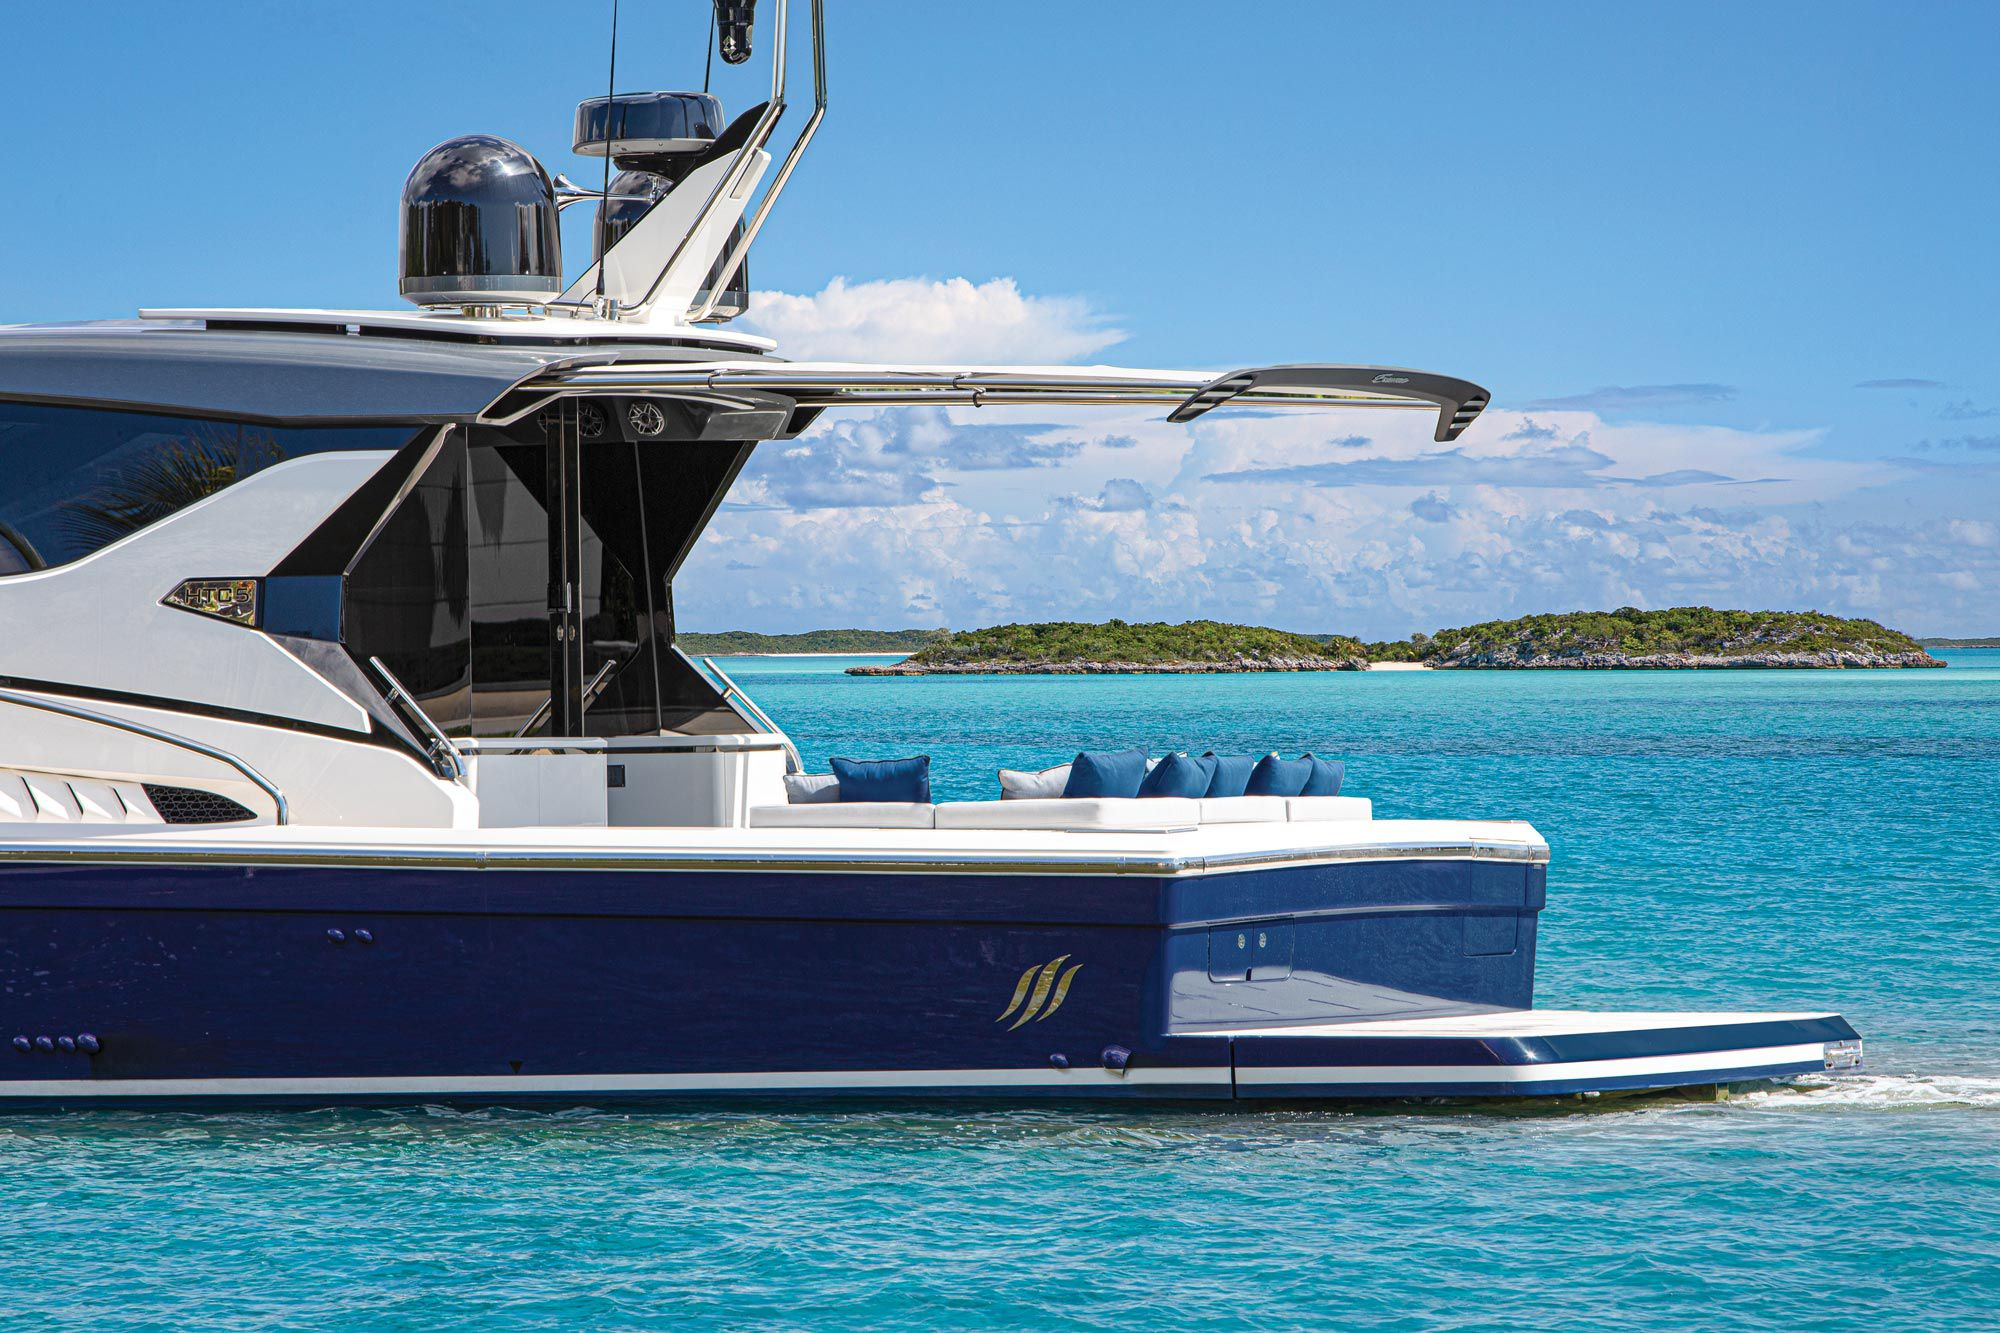 When not in use, the HTC5's retractable sunshade tucks away, helping maintain the yacht's sleek profile.